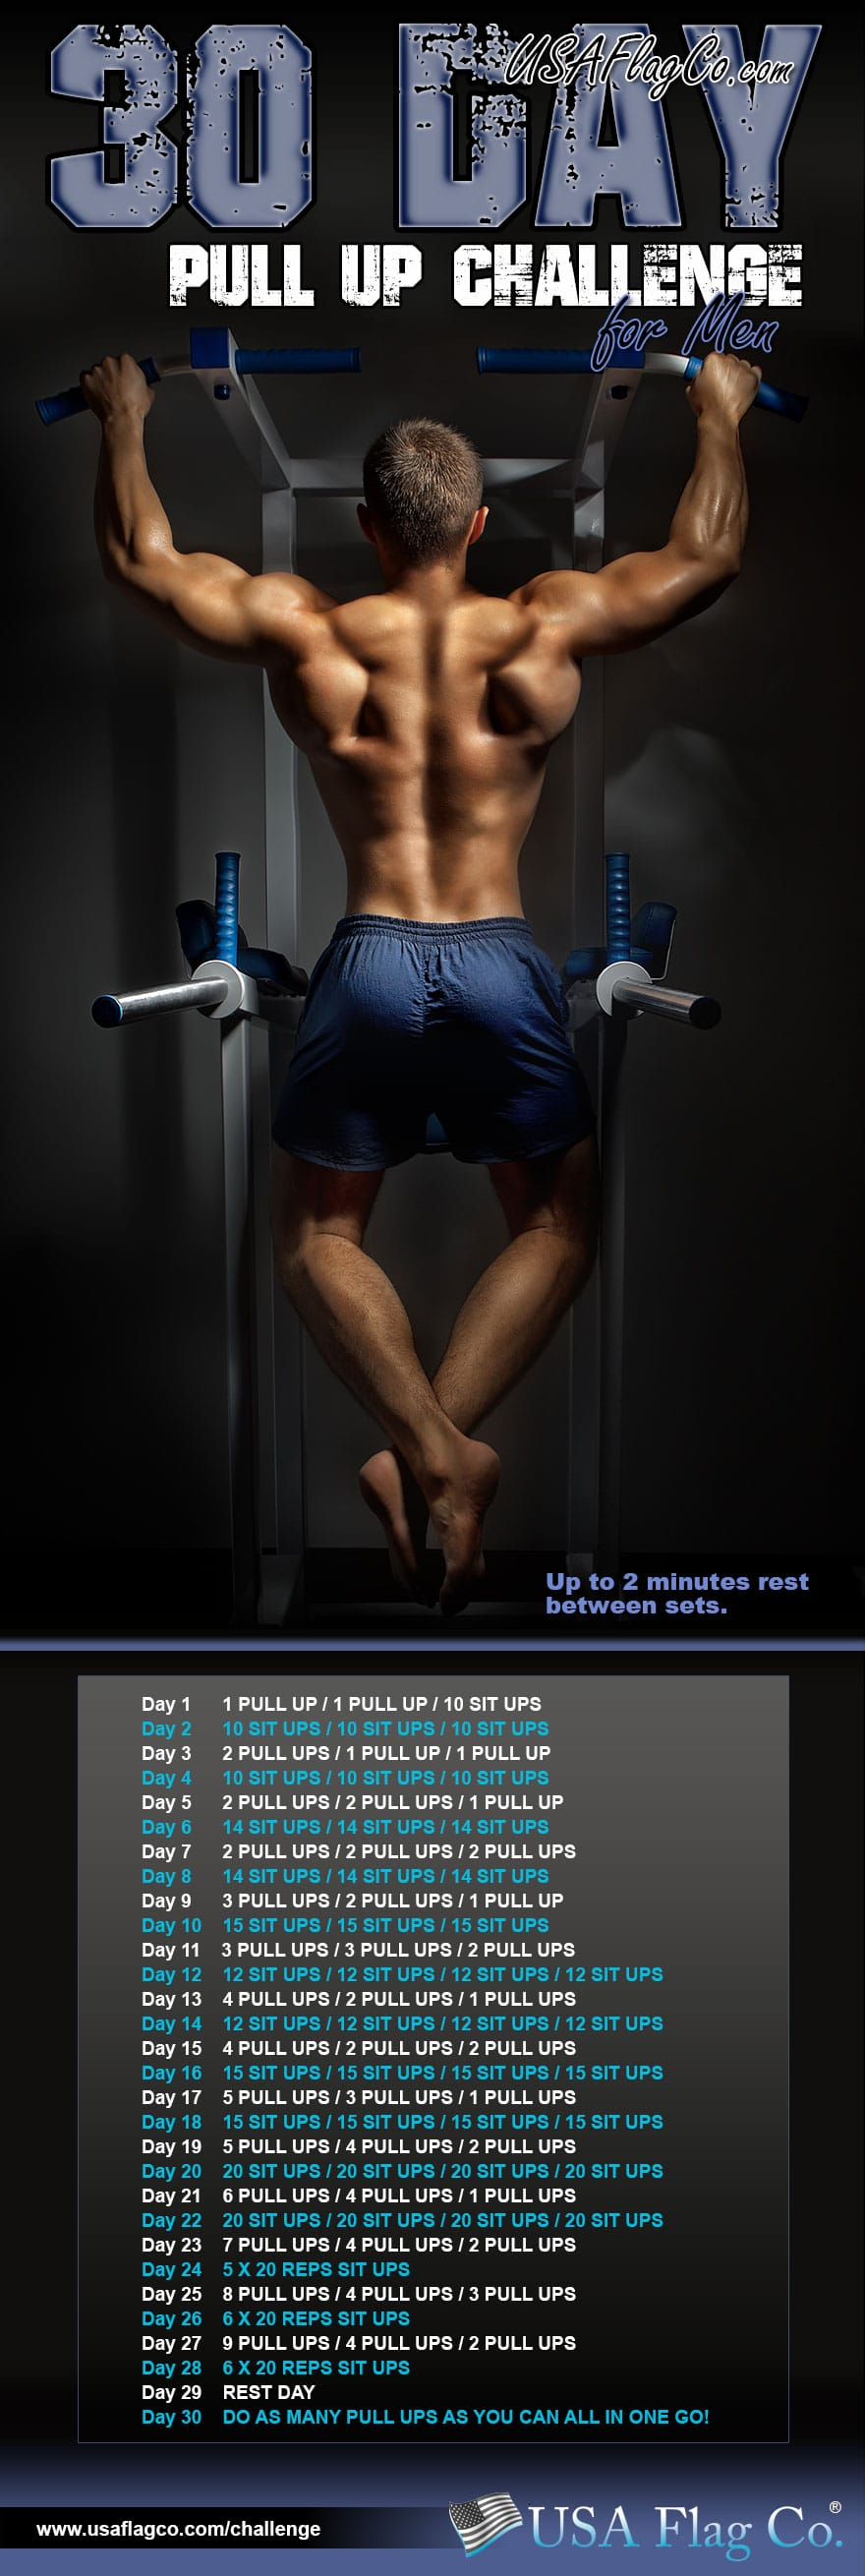 30 Day Pull Up Challenge for Men by USA Flag Co.